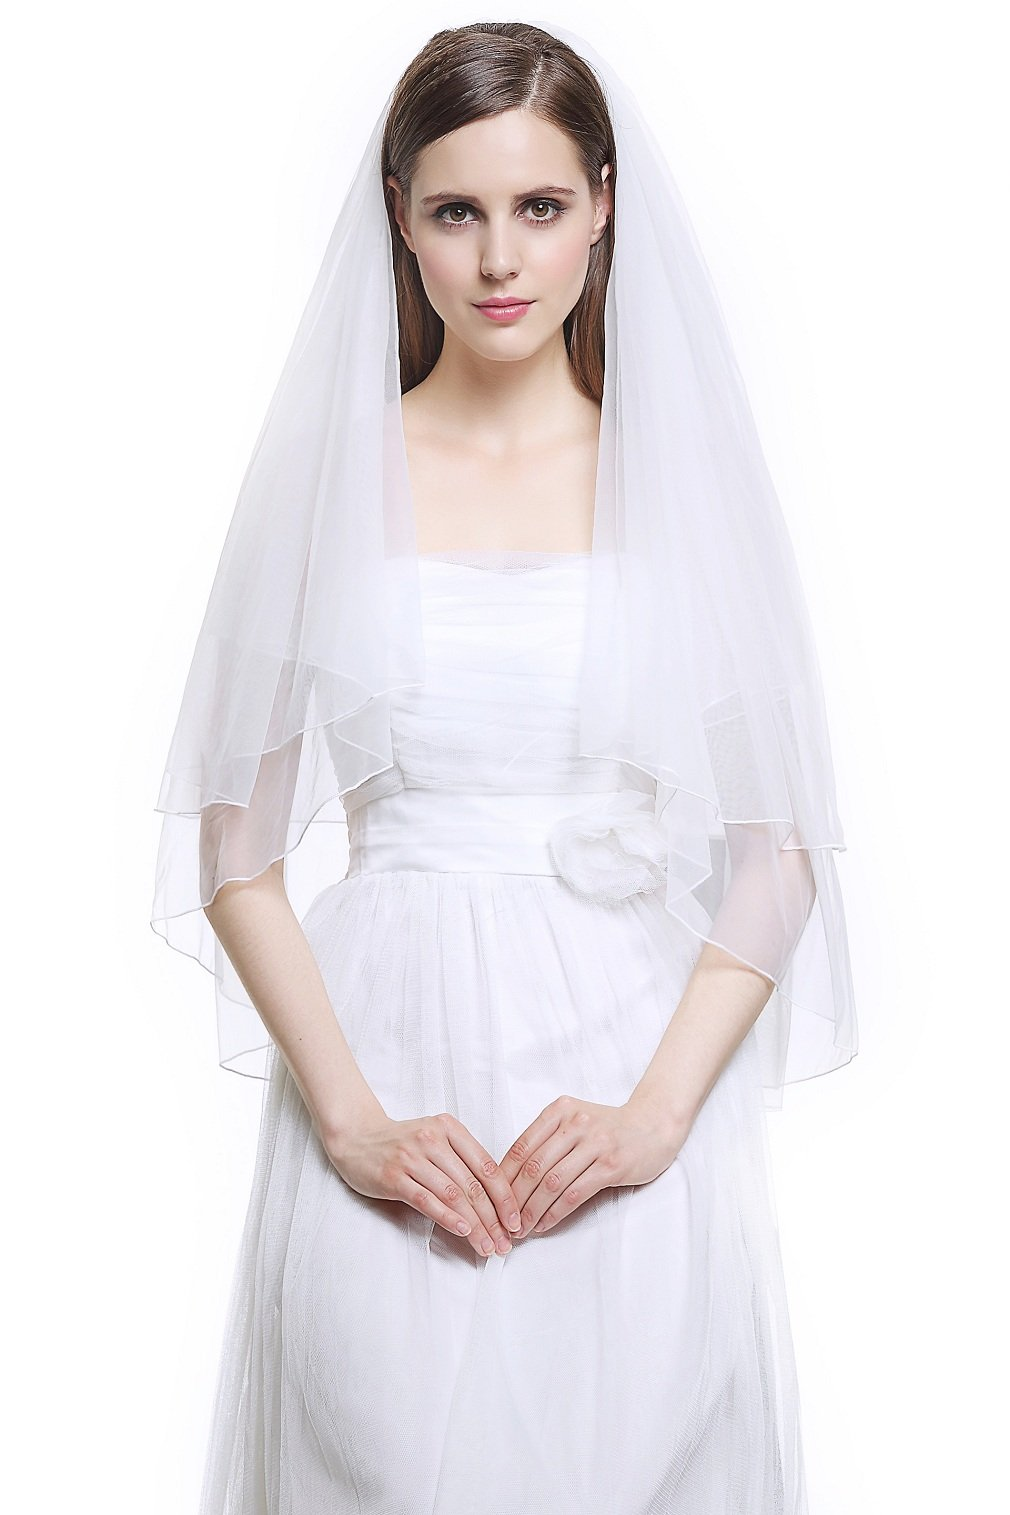 Wedding Bridal Veil with Comb 2 Tier Cut Edge Fingertip Length 35'' Ivory